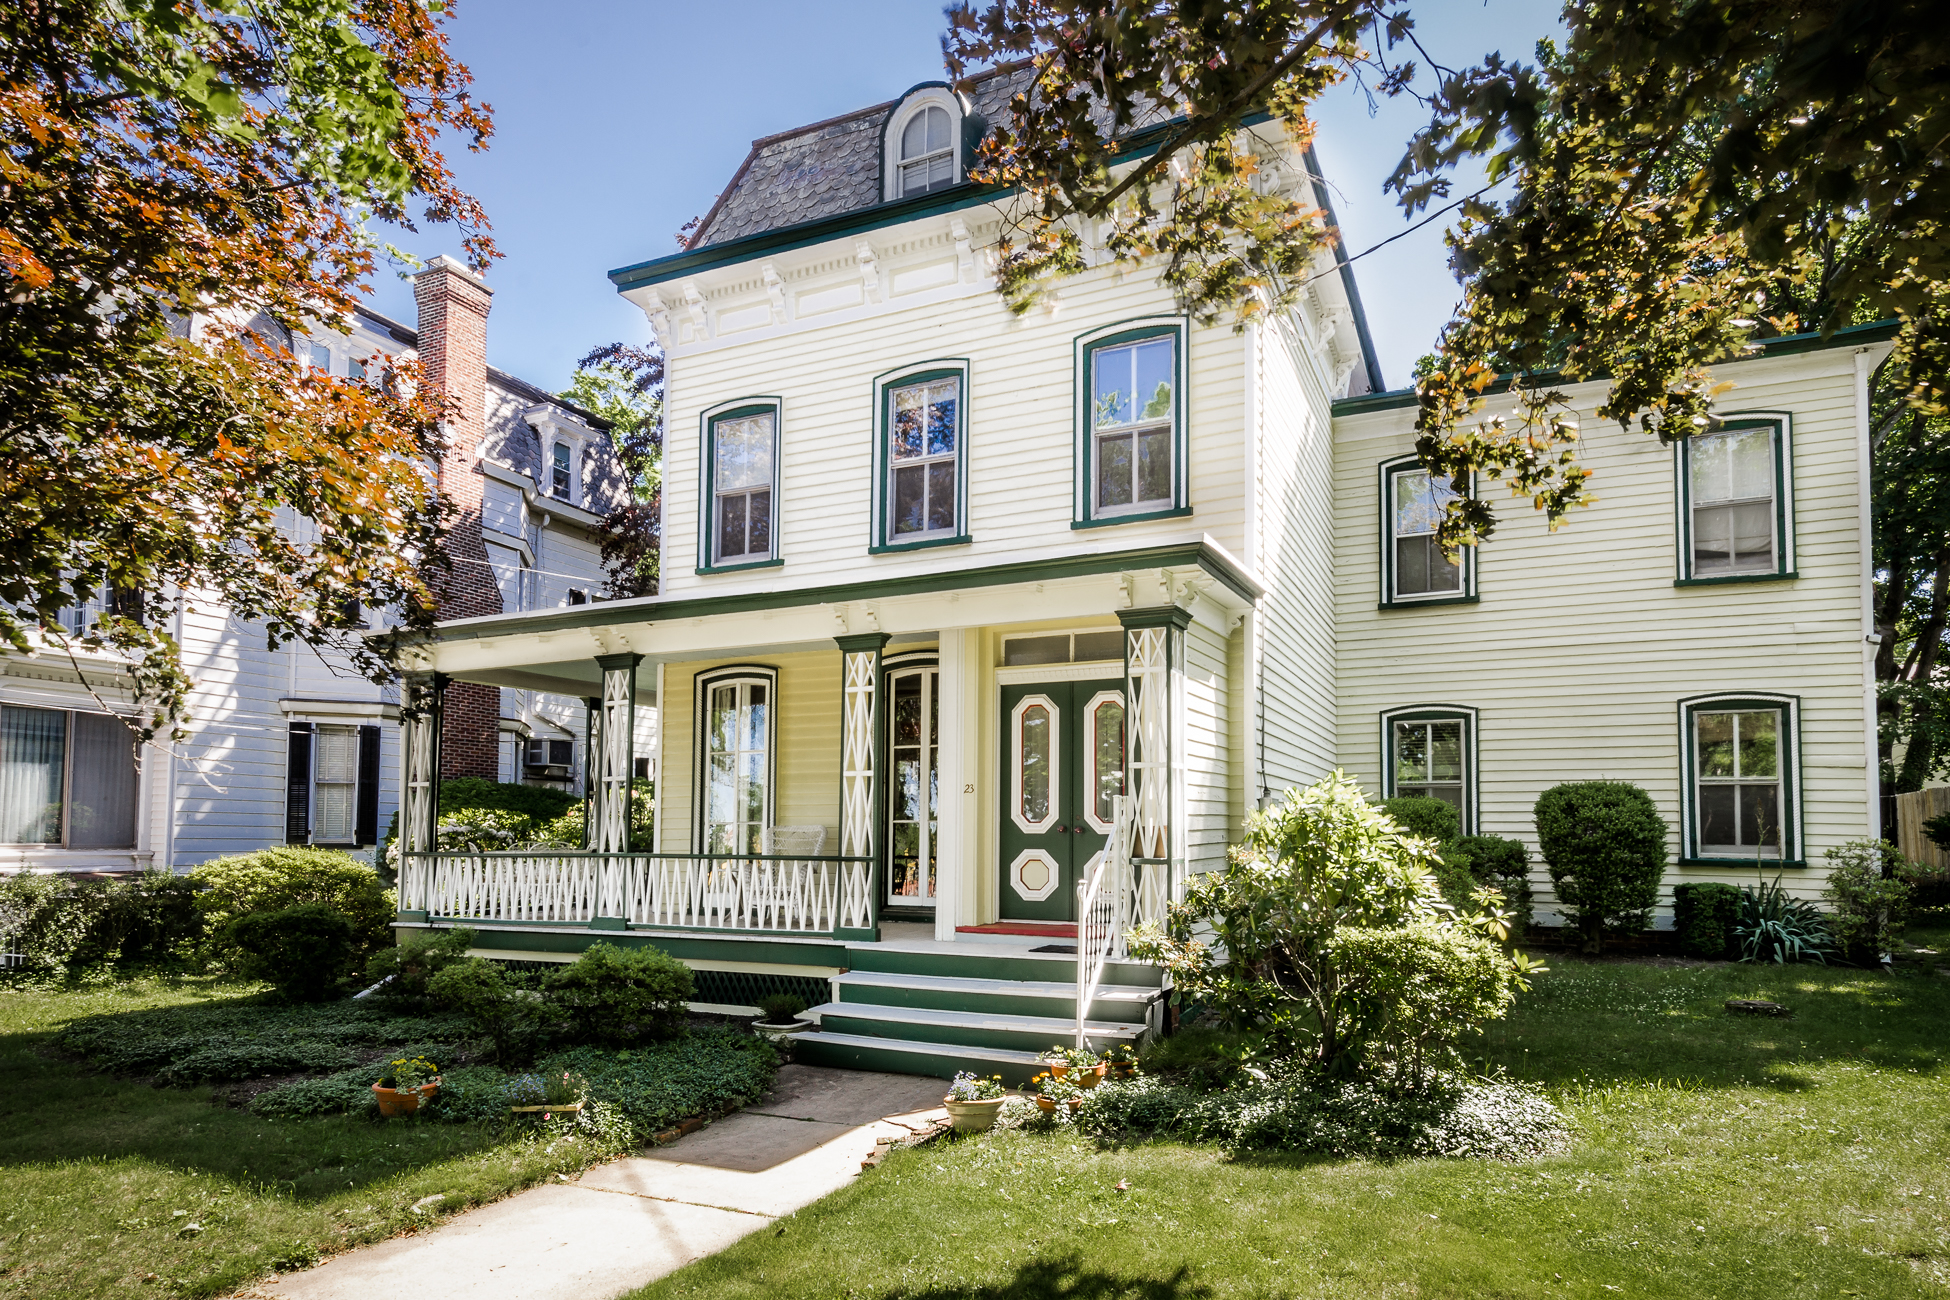 Single Family Home for Sale at Capturing All The Grace Of Yesteryear 23 South Adelaide Avenue Highland Park, New Jersey, 08904 United States